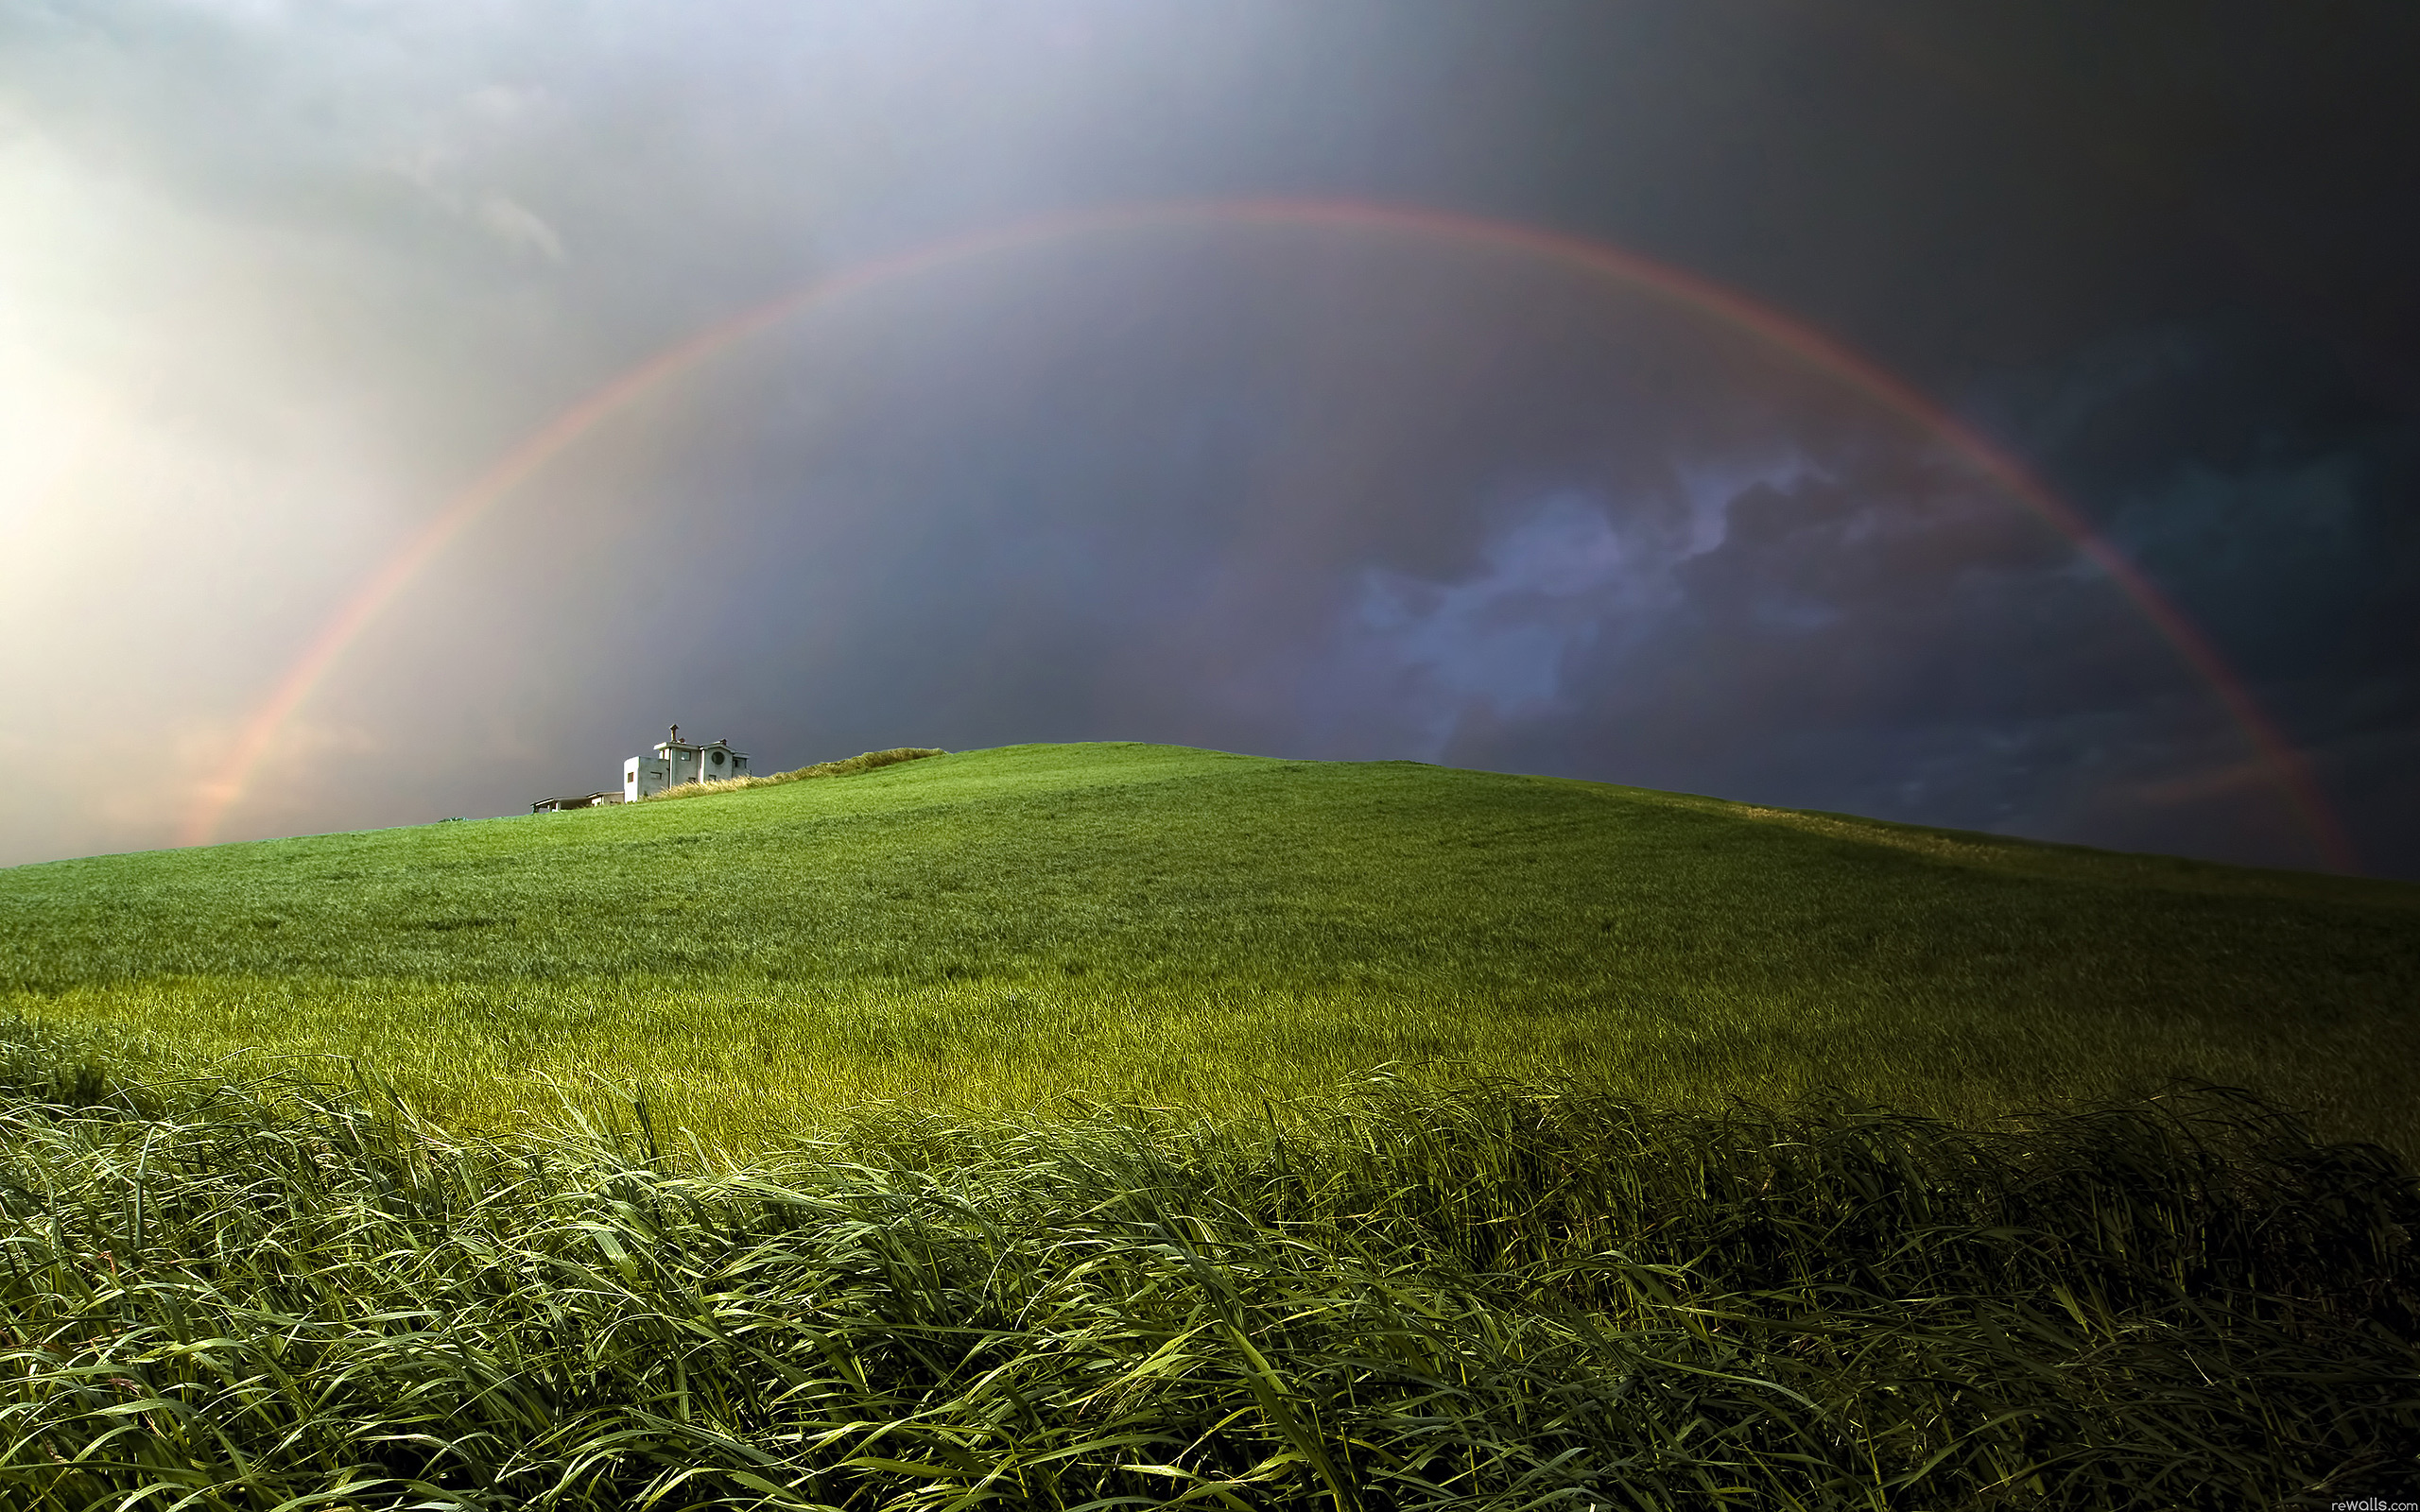 Hill Rainbow Nature Scene With Rainbow 2220506 Hd Wallpaper Backgrounds Download